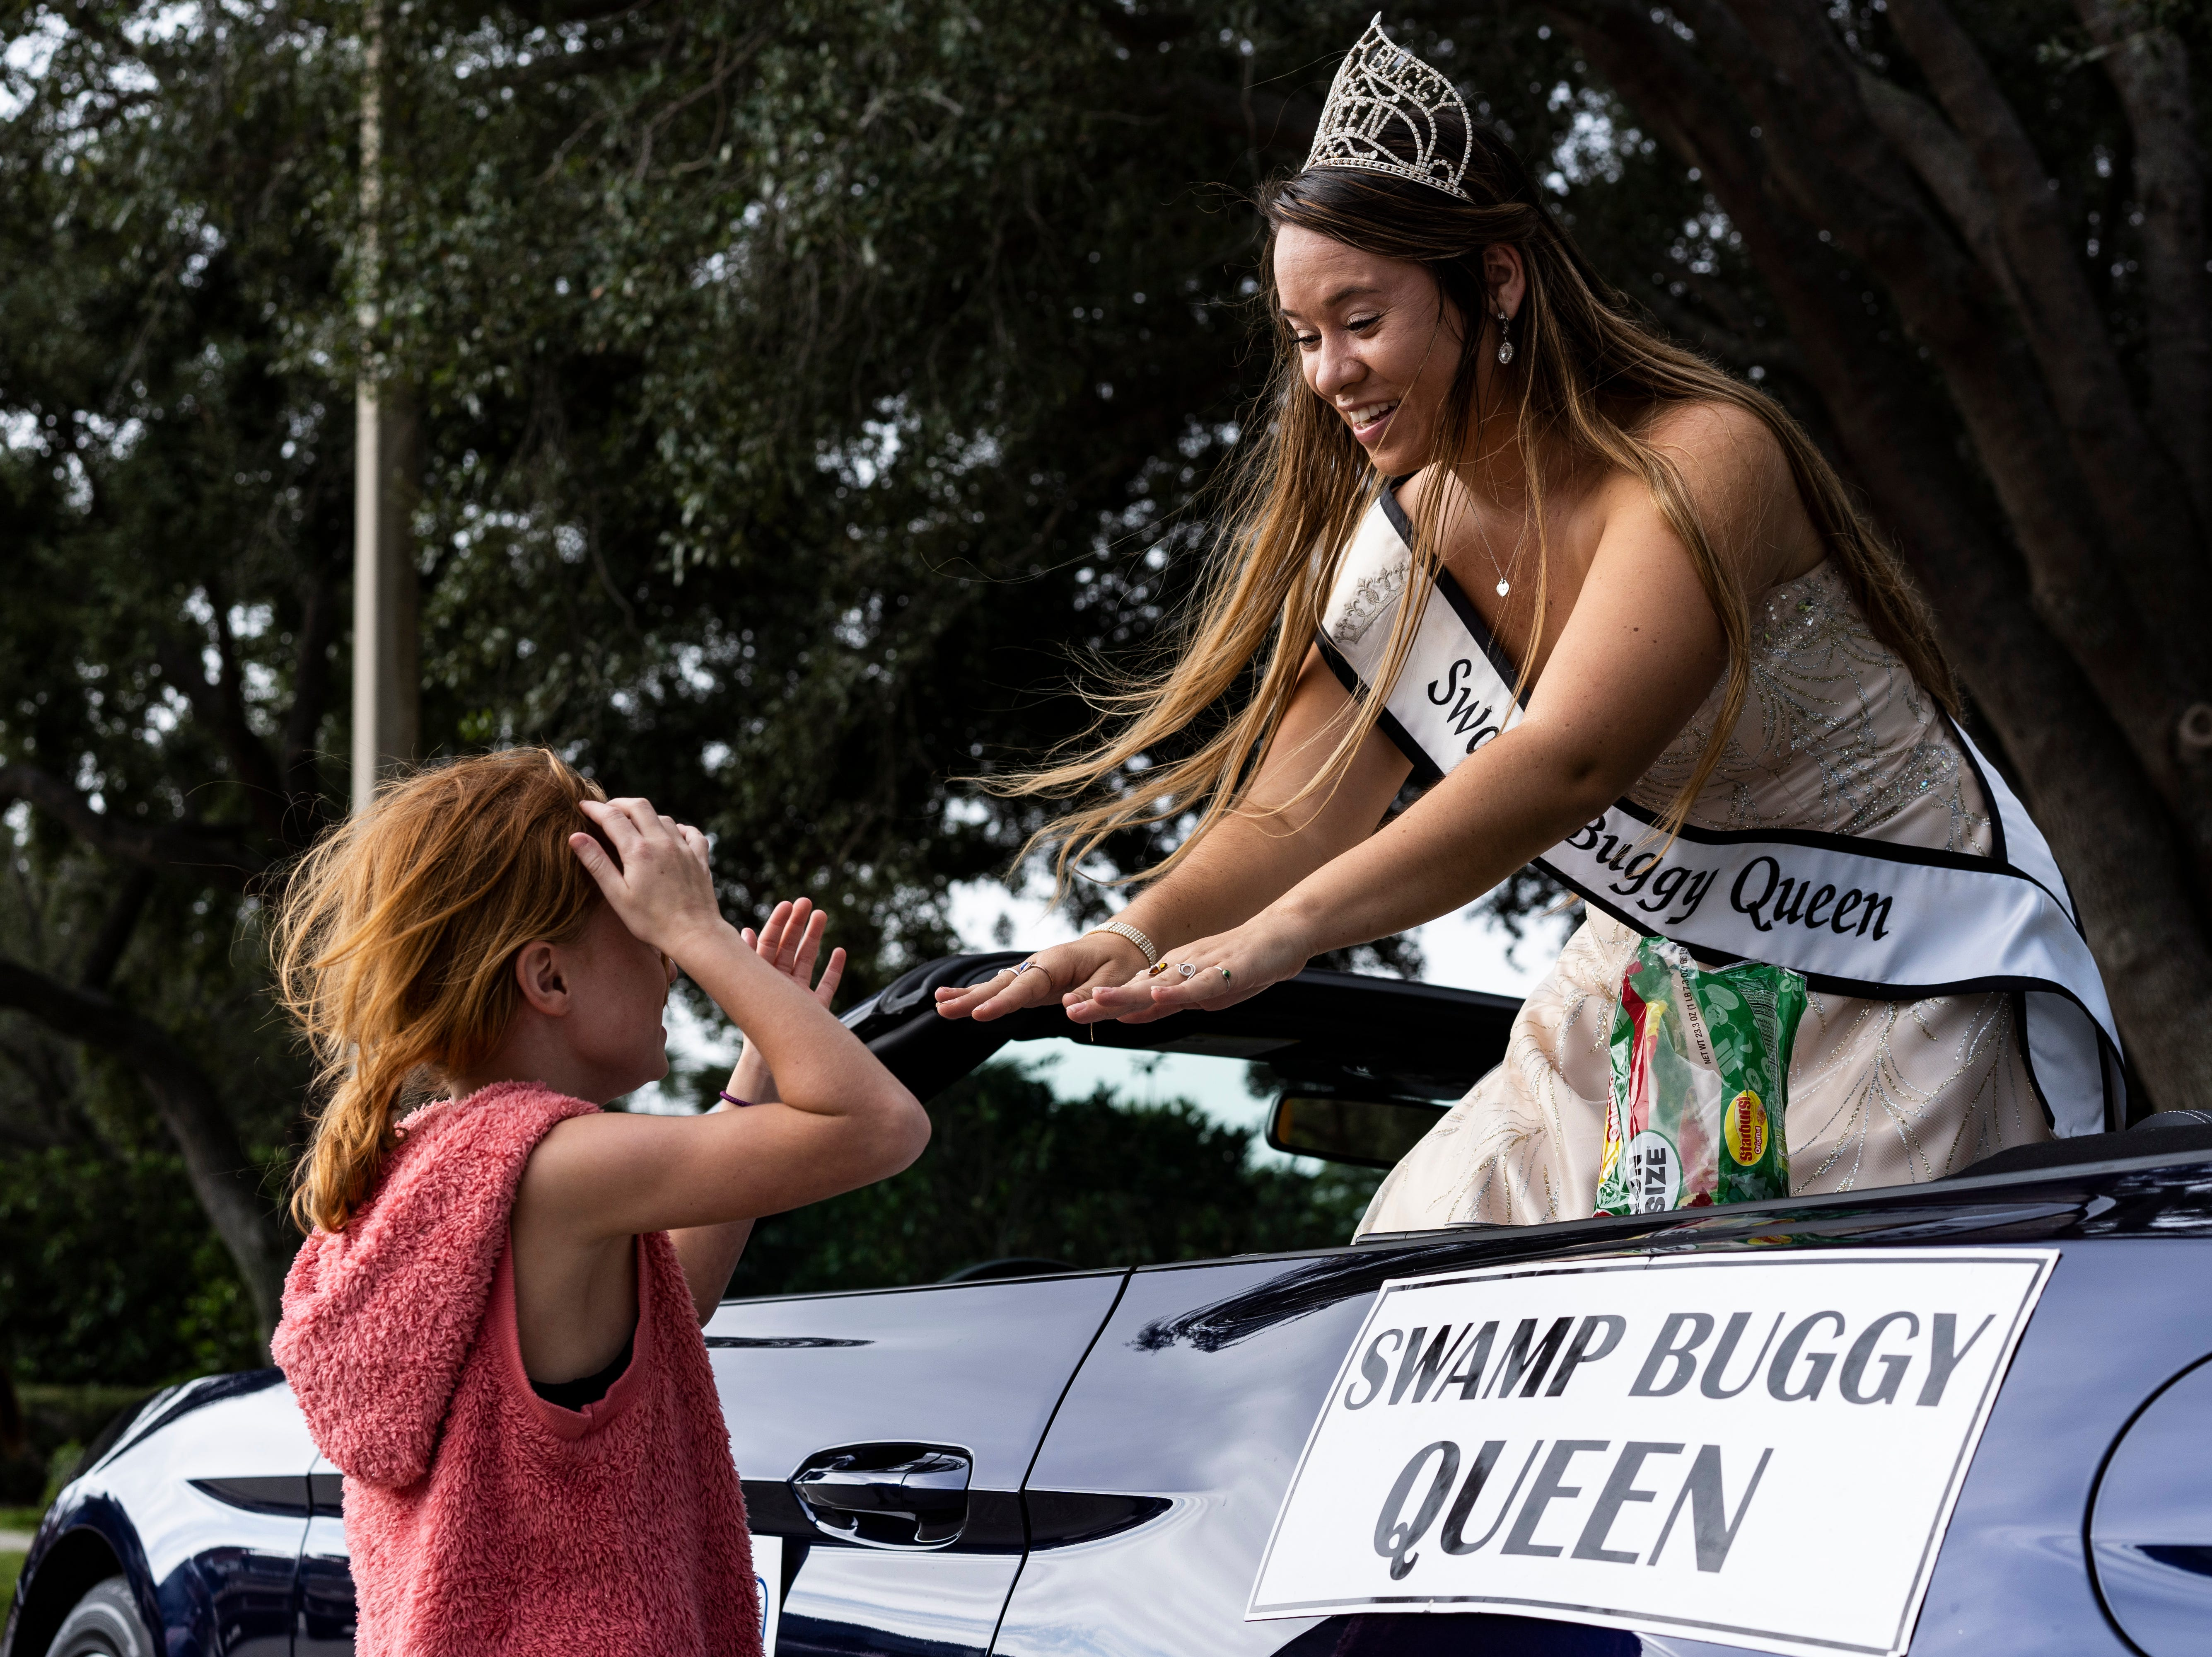 Current Swamp Buggy Queen Erica Flesher, 23, plays a game with Peyton Widner, 7, before the kick-off of the 70th annual Swamp Buggy Parade Saturday morning, Nov. 3, 2018. She's served as Swamp Buggy queen the past four years. Saturday's parade featured past Swamp Buggy Queens, Naples High School marching band, racing buggies and Swampy - the race mascot, among other things.